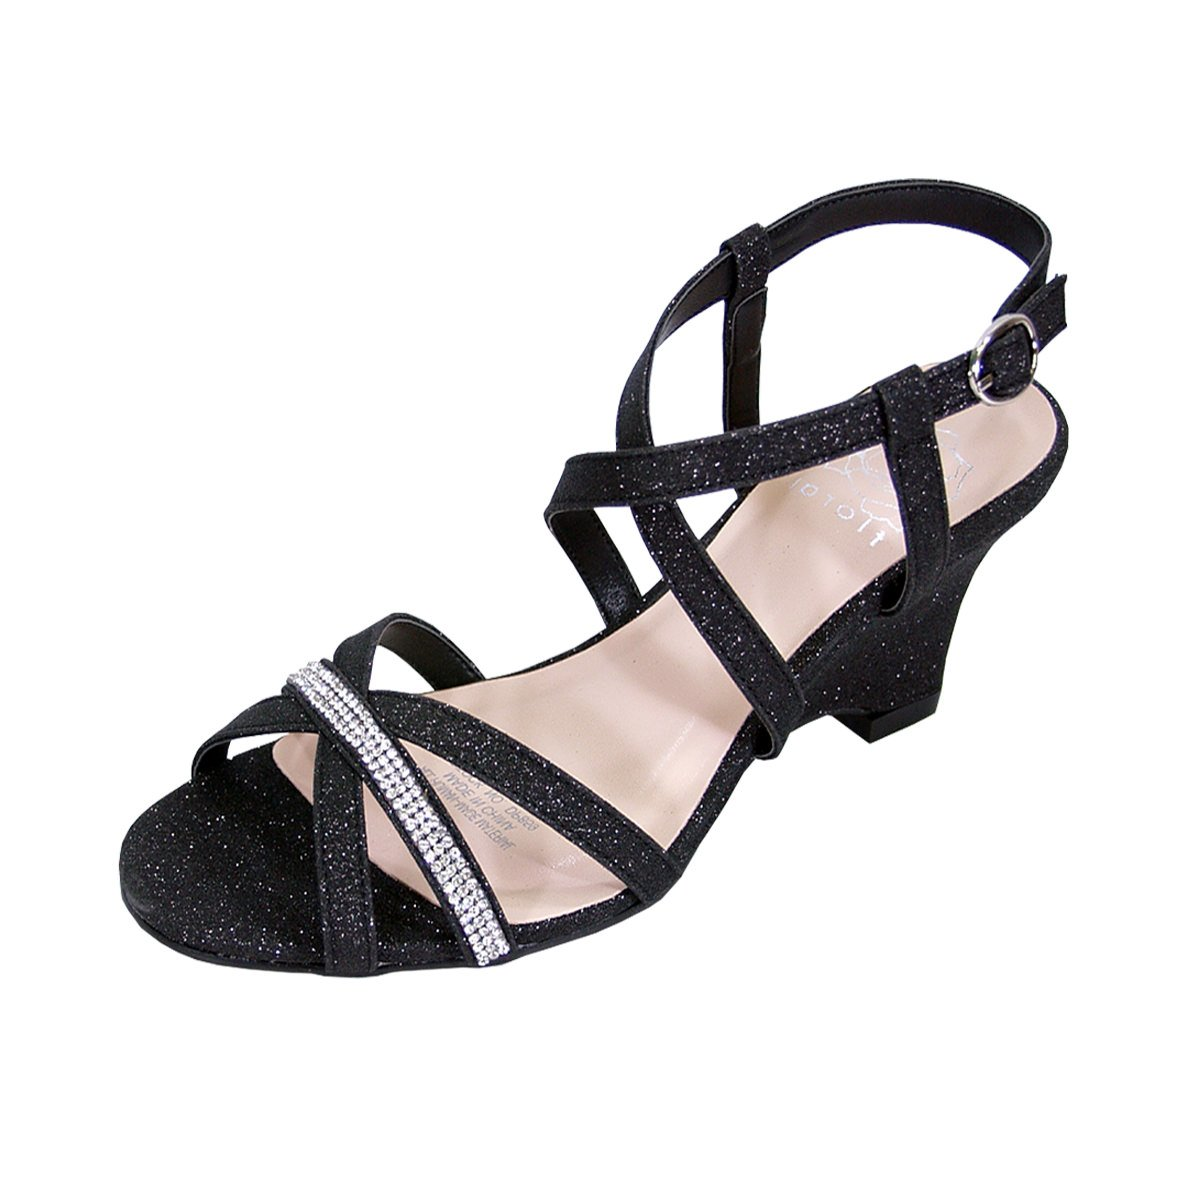 Floral Joanne Women Extra Wide Width Chic Rhinestone Strappy Wedge Party Heeled Sandals Black 9